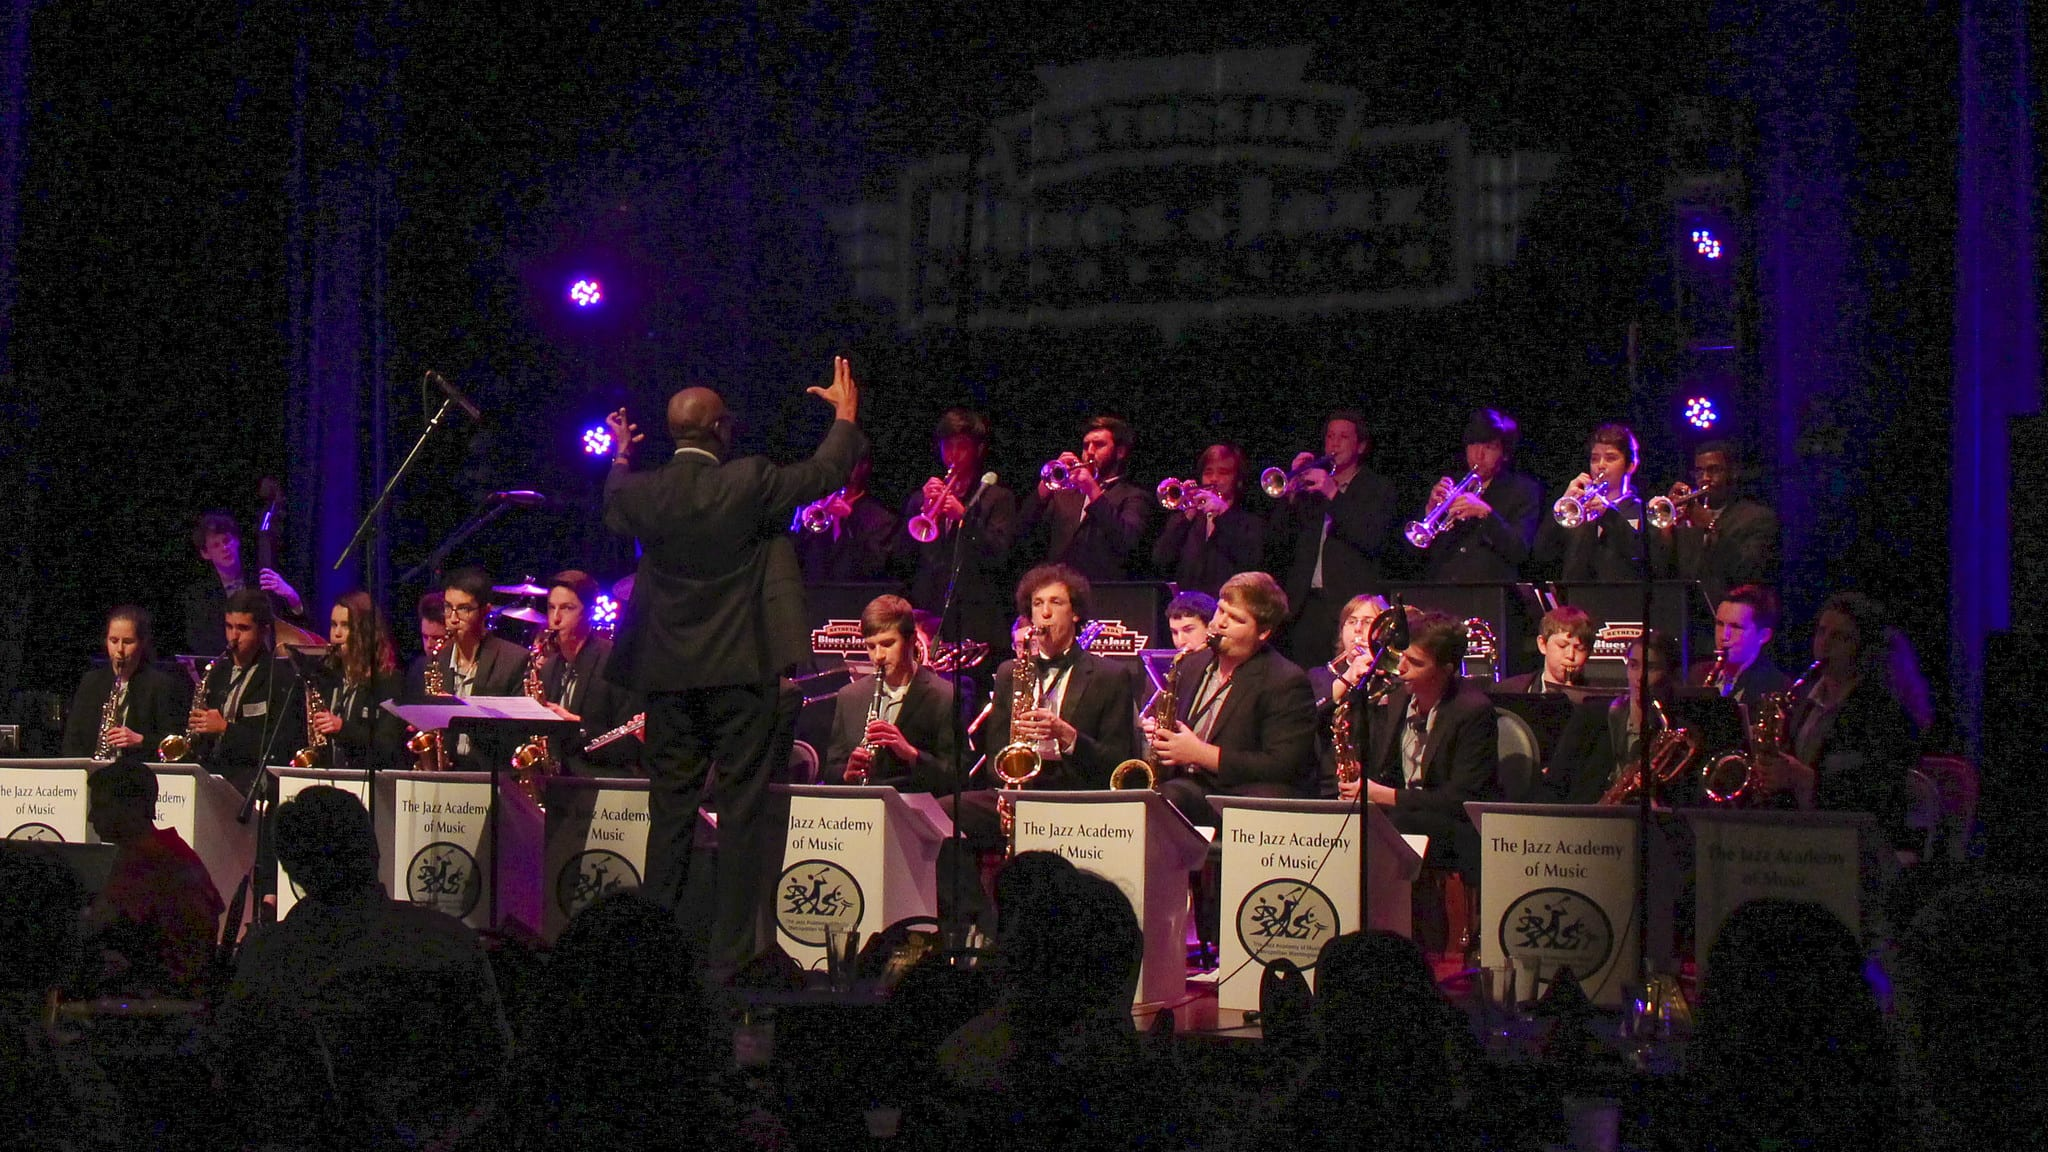 The saxophonist and educator Paul Carr leads his Jazz Academy of Music big band in a 2016 concert at Bethesda Blues & Jazz. Courtesy woodleywonderworks/flickr